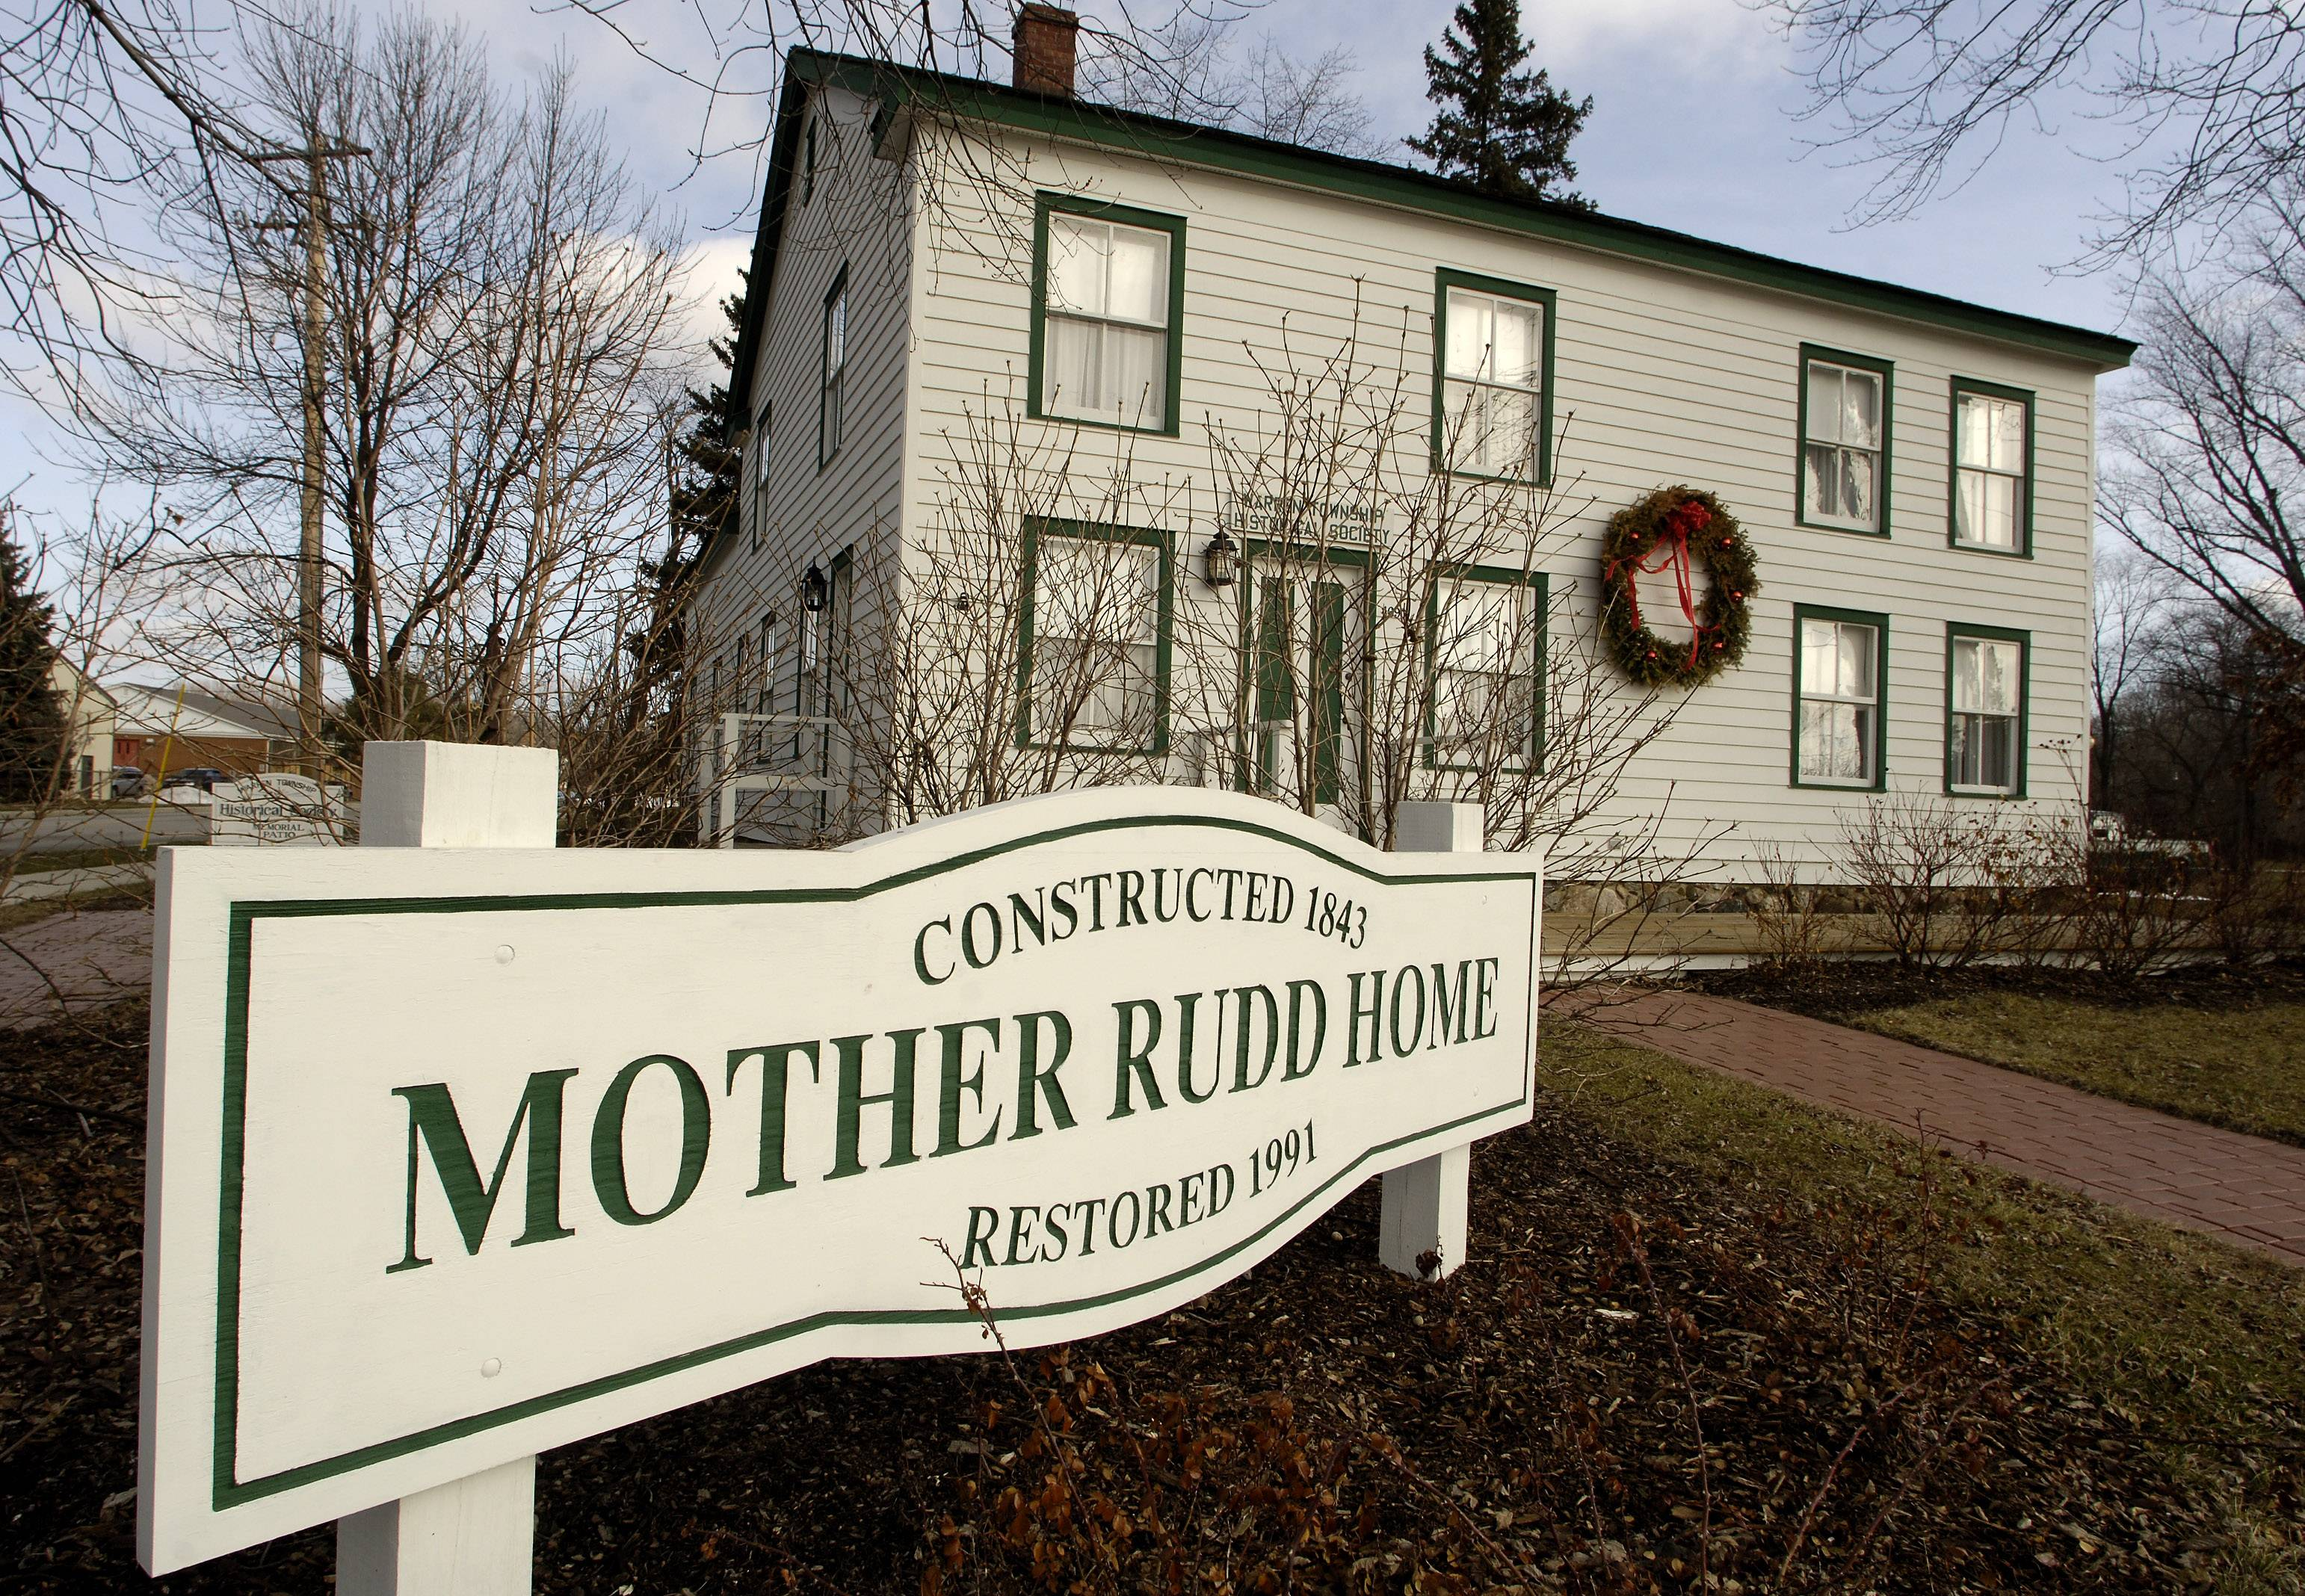 The Mother Rudd Home in Gurnee is believed to be one of several locations throughout the suburbs used by runaway slaves to hide from slave catchers and receive assistance on their journey to freedom in Canada.